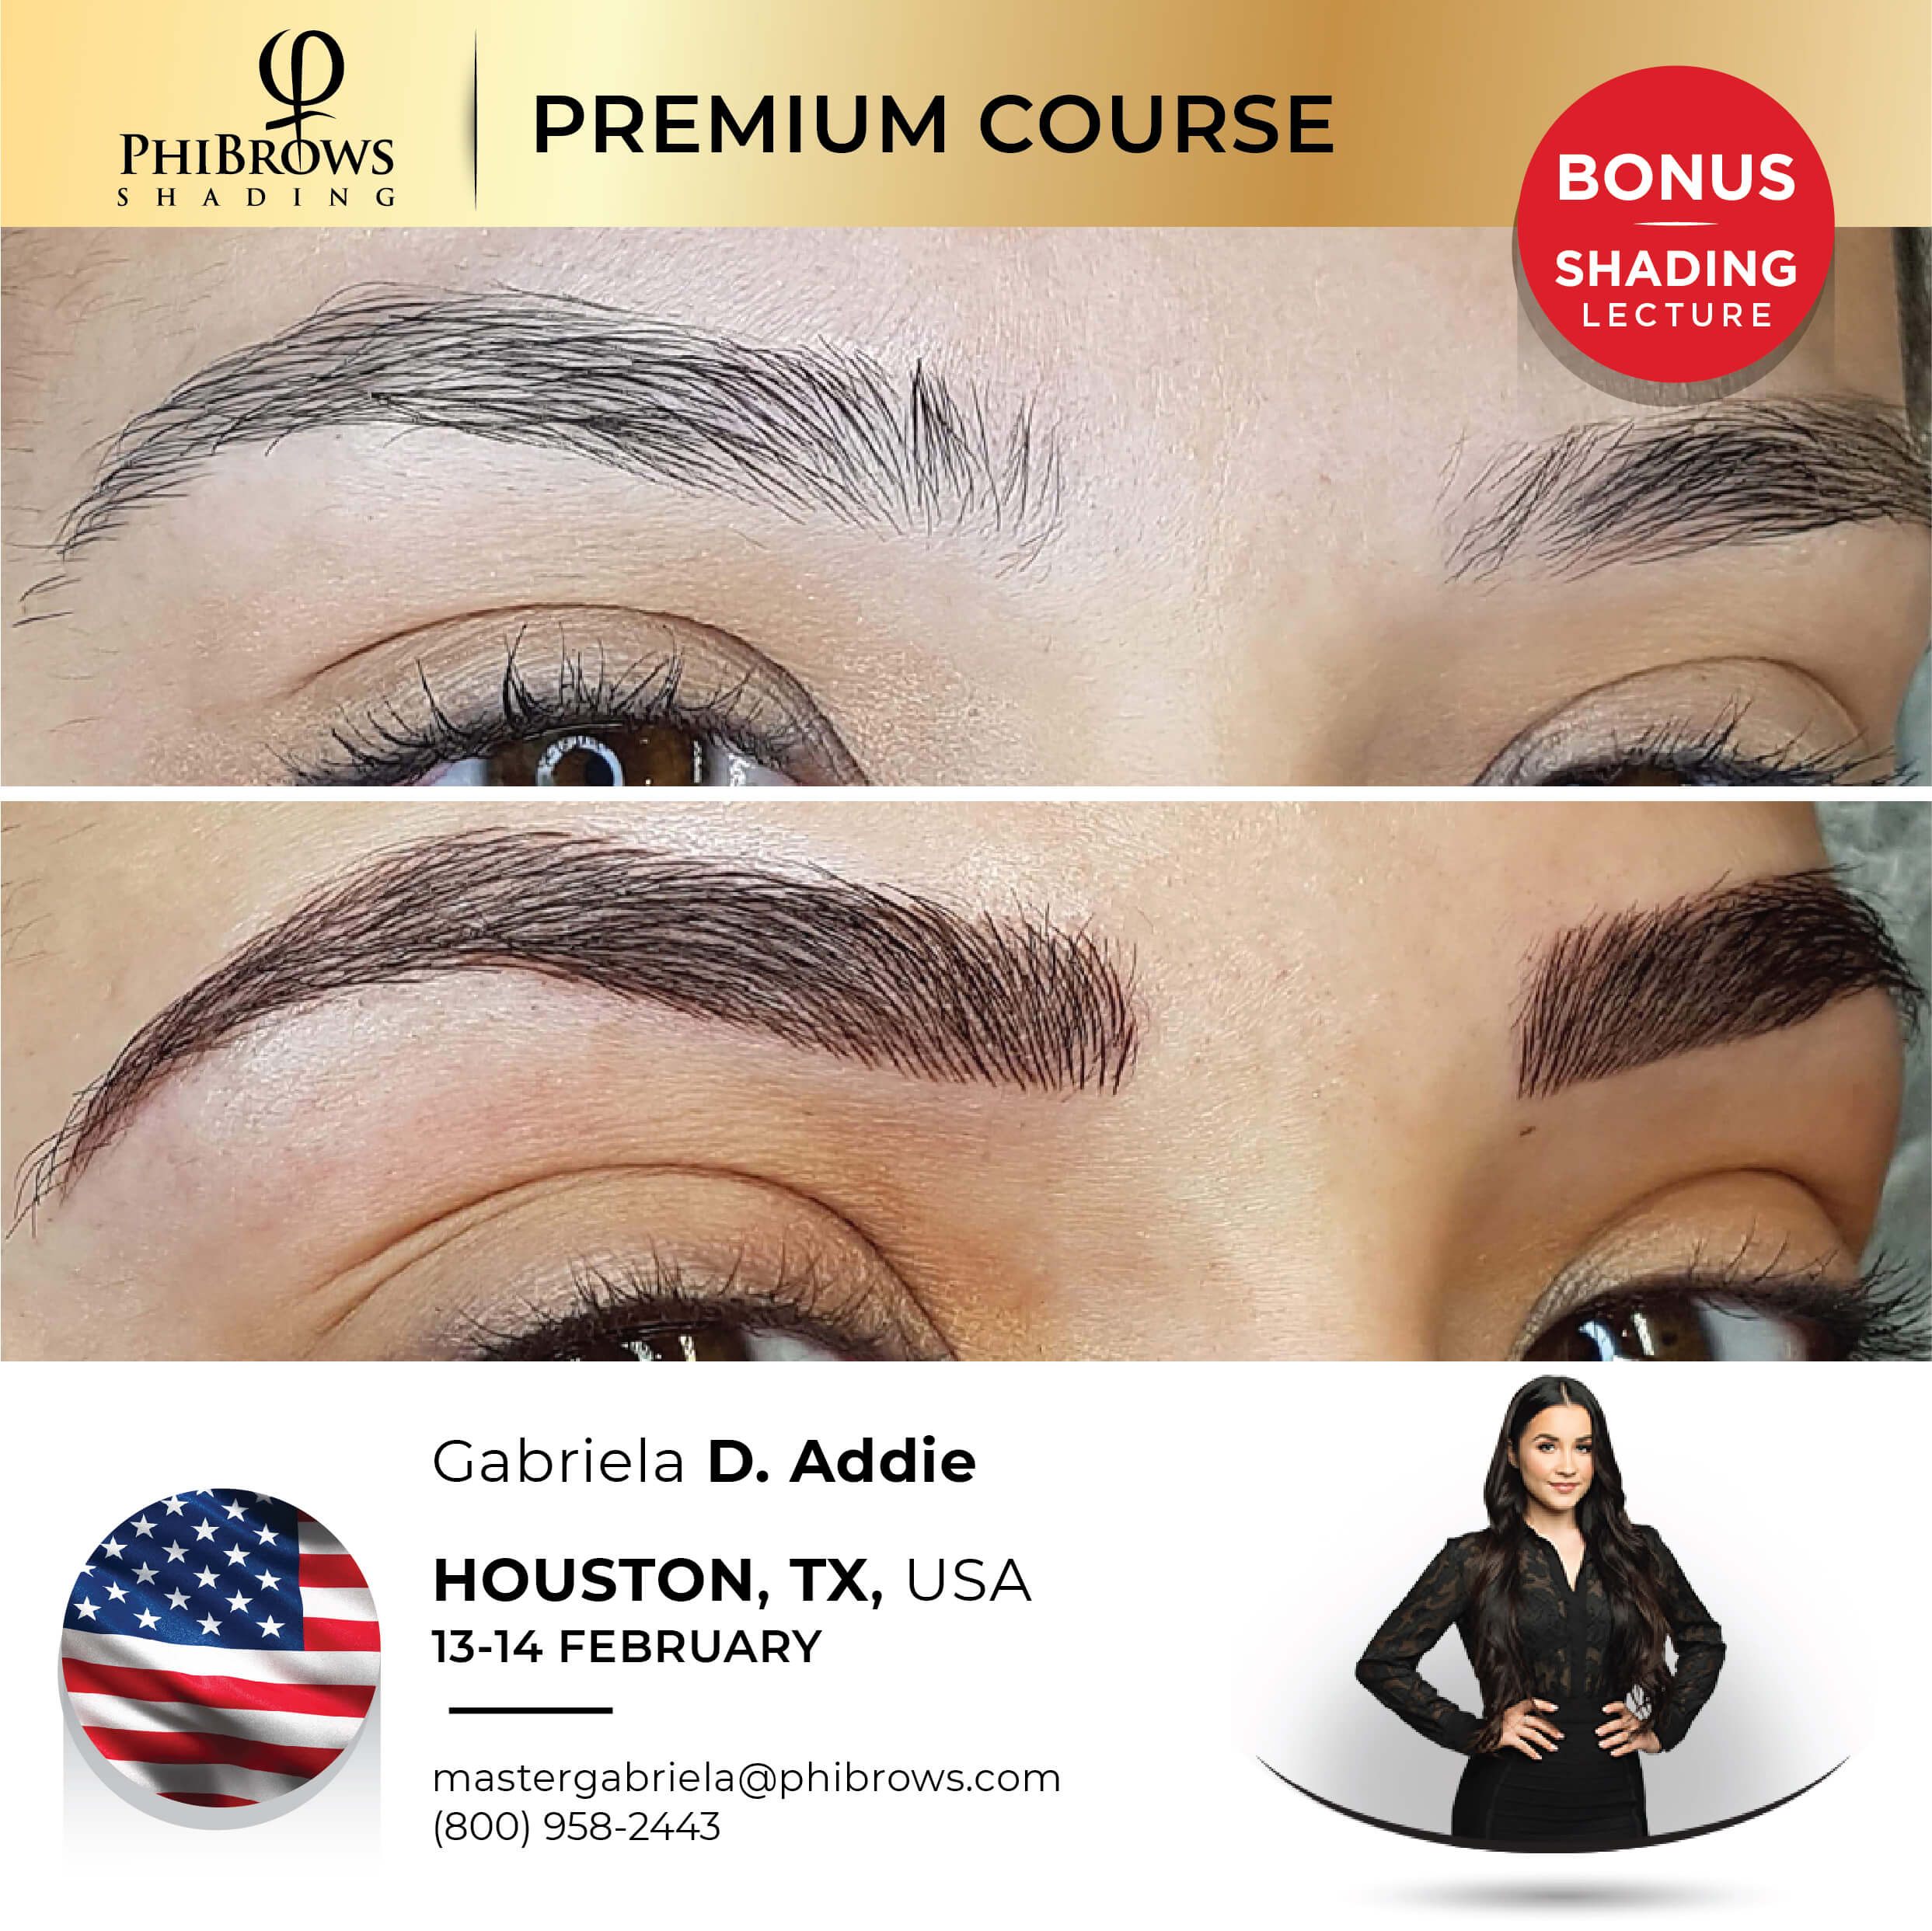 21-02-13 Phibrows Microblading Training Houston, TX – February 13/14